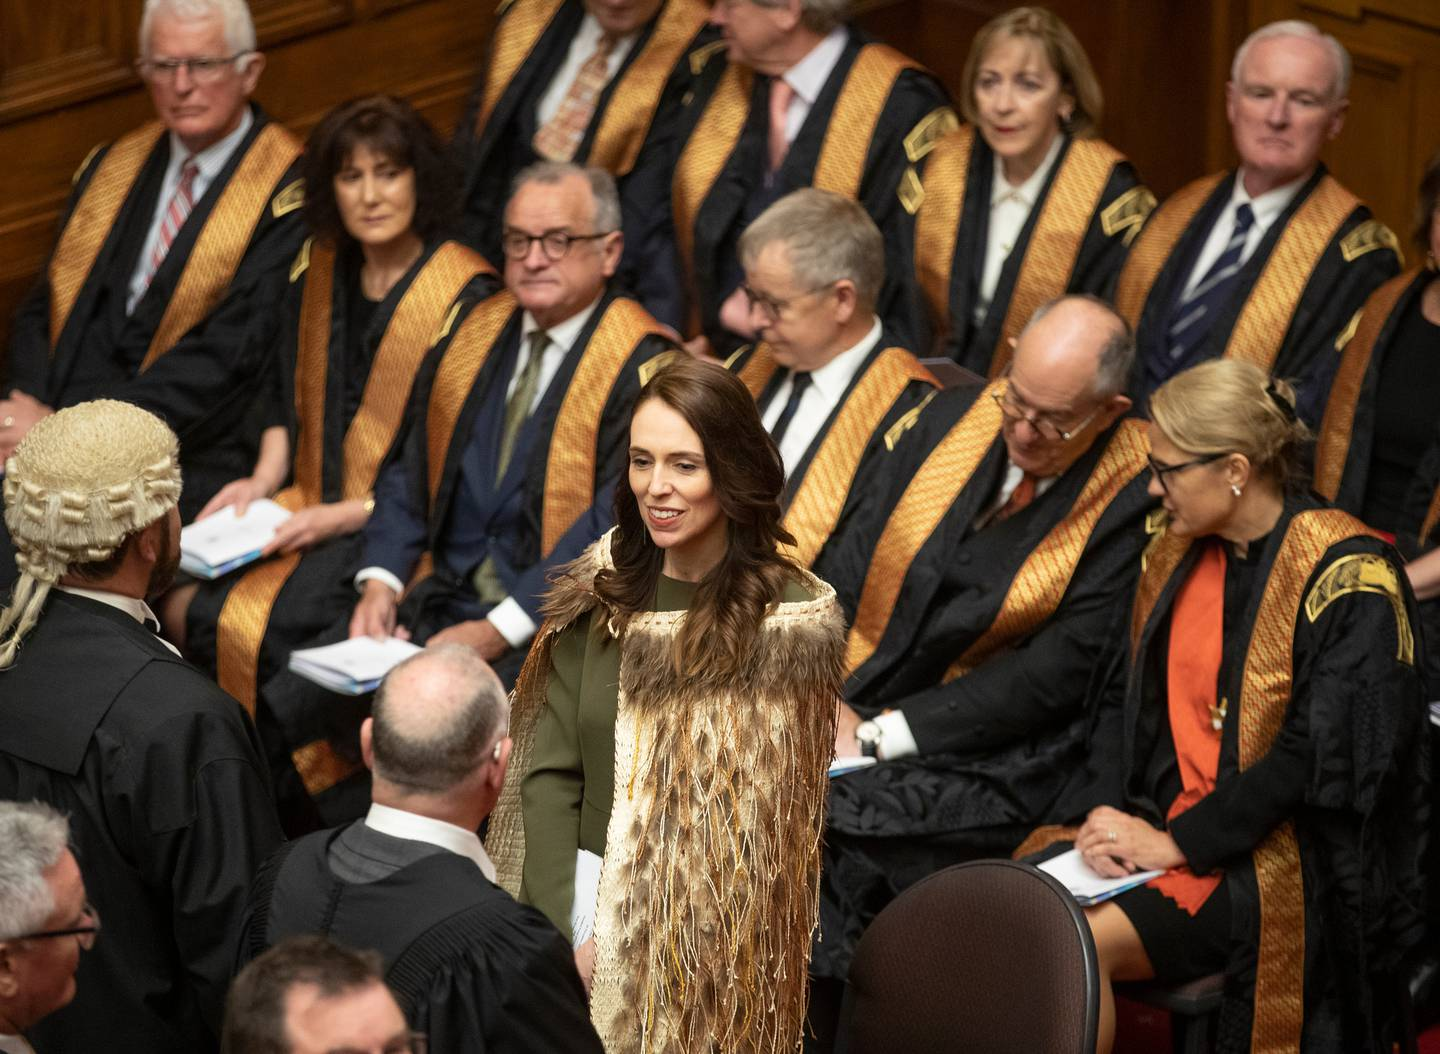 Prime Minister Jacinda Ardern standing in front of members of the judiciary as MPs enter the Legislative Council Chamber during the State Opening of Parliament. Photo / Mark Mitchell